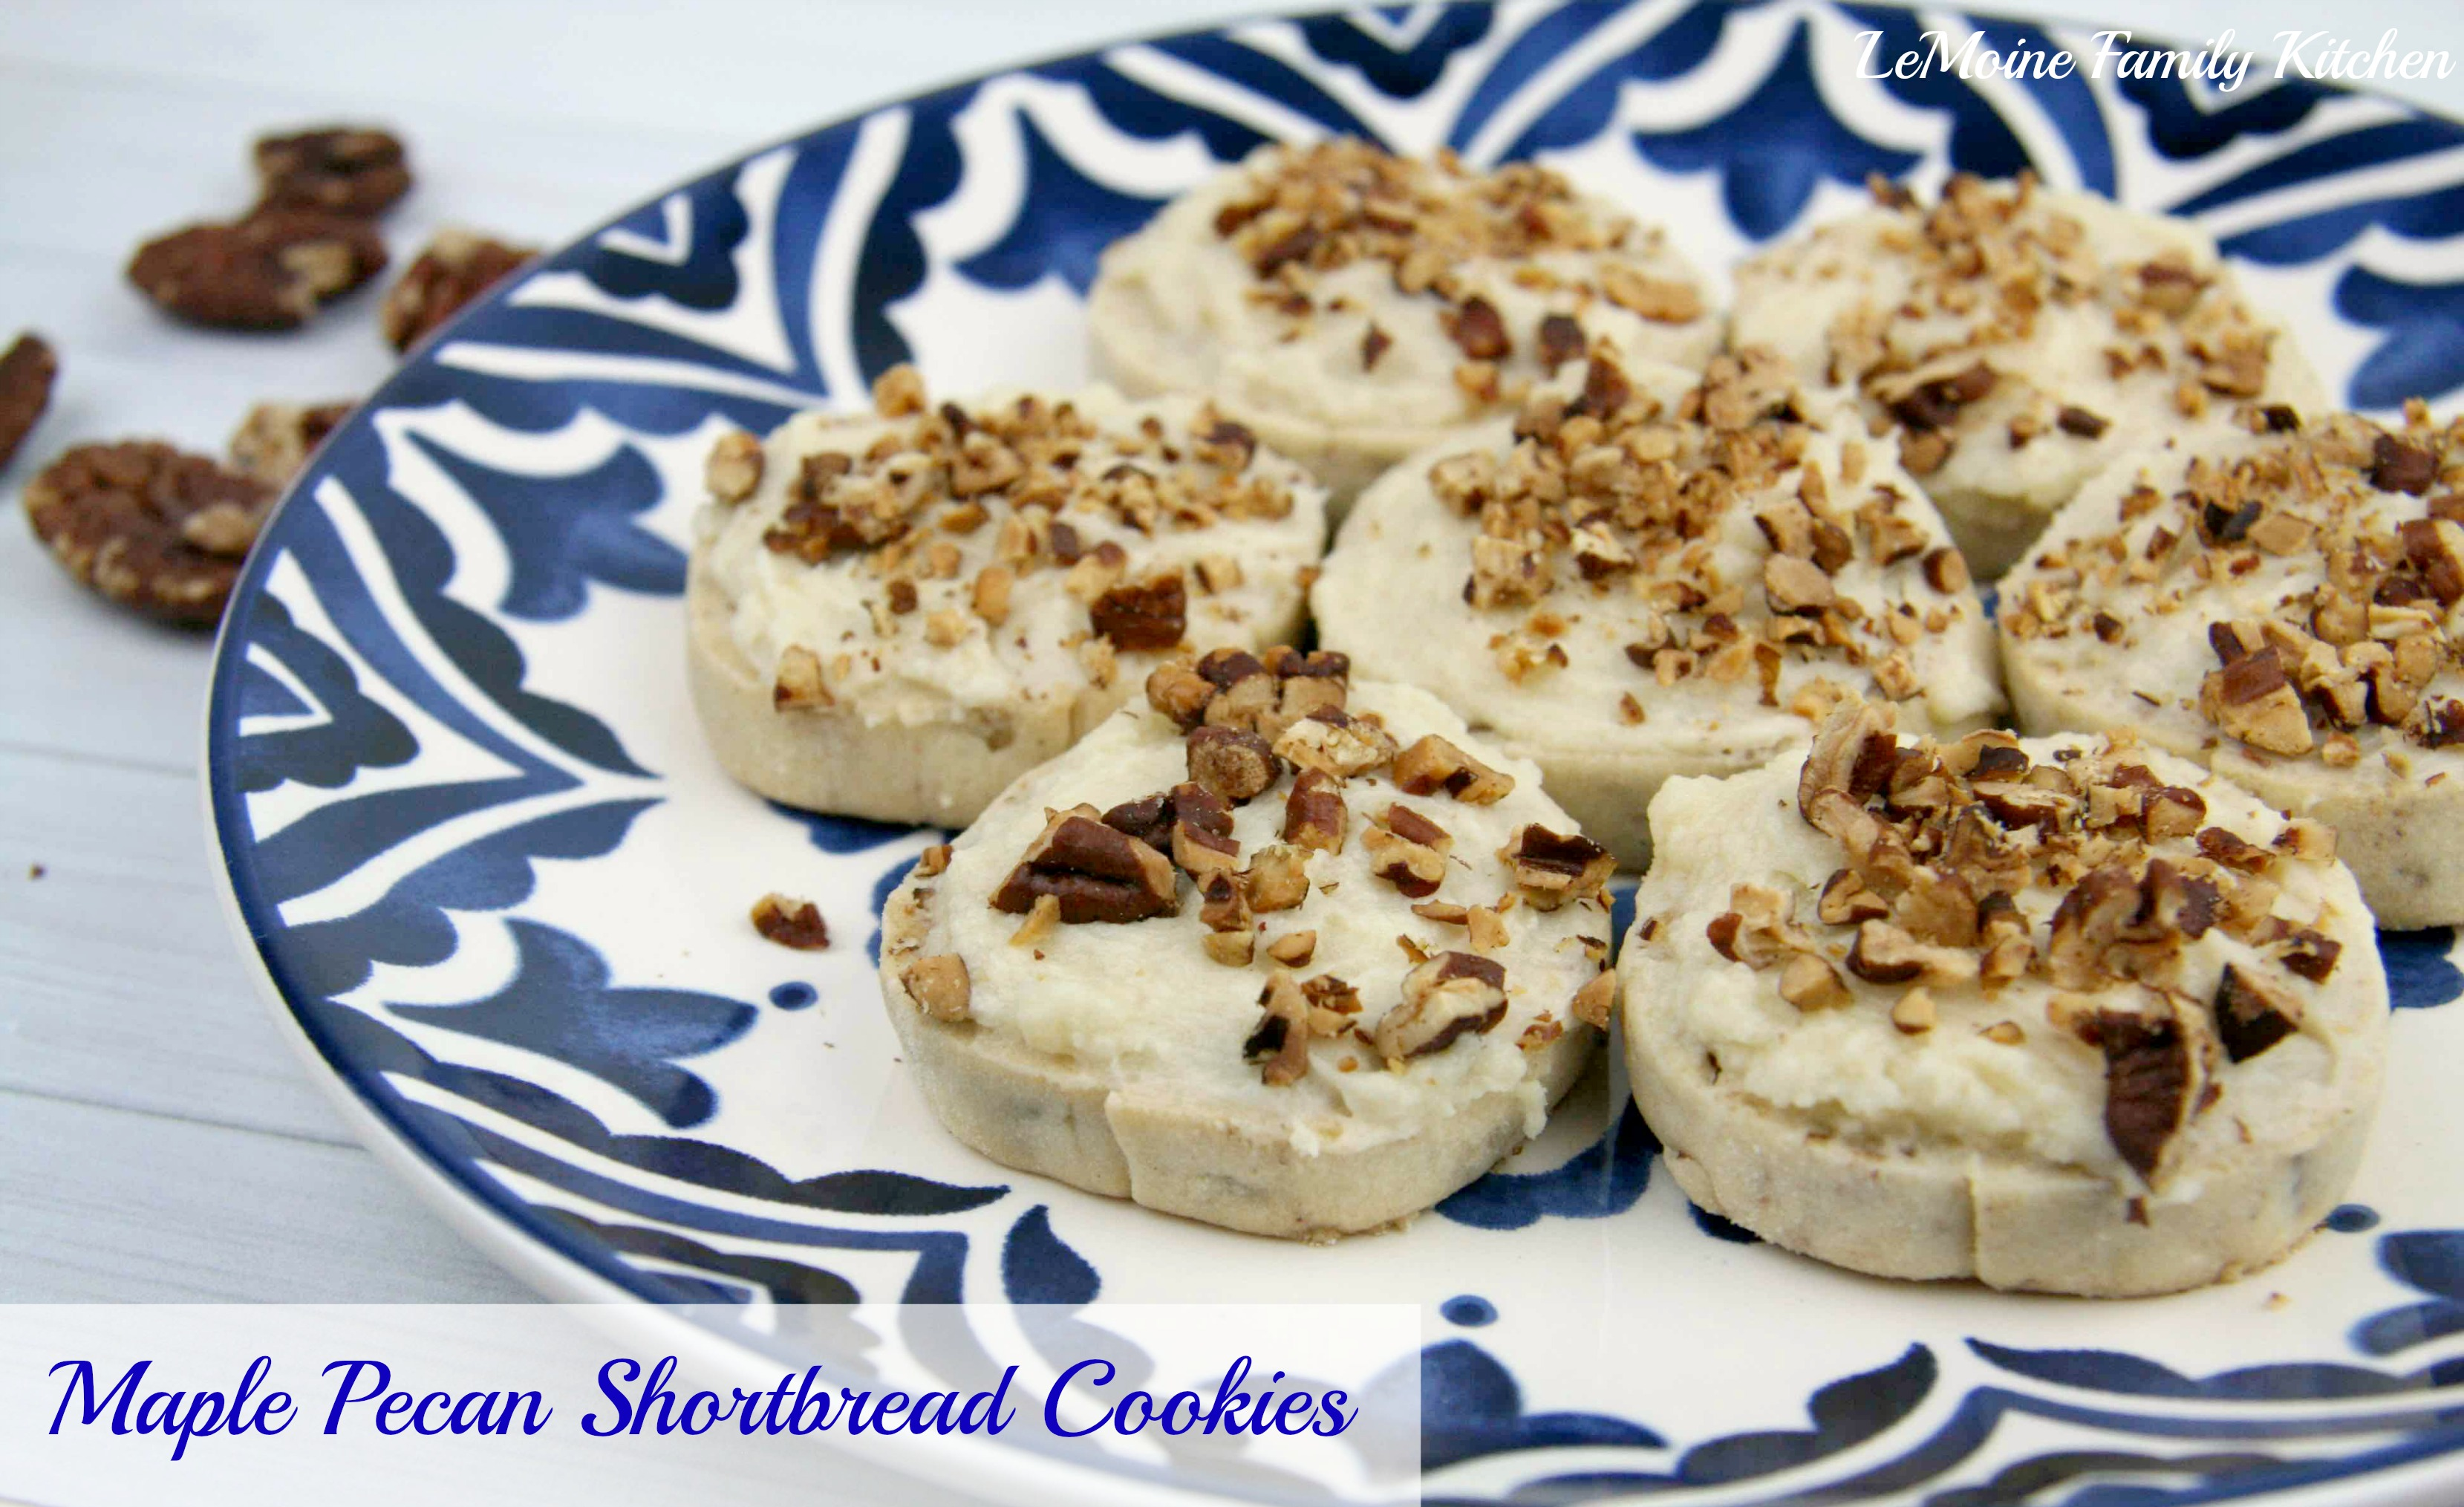 Maple Pecan Shortbread Cookies